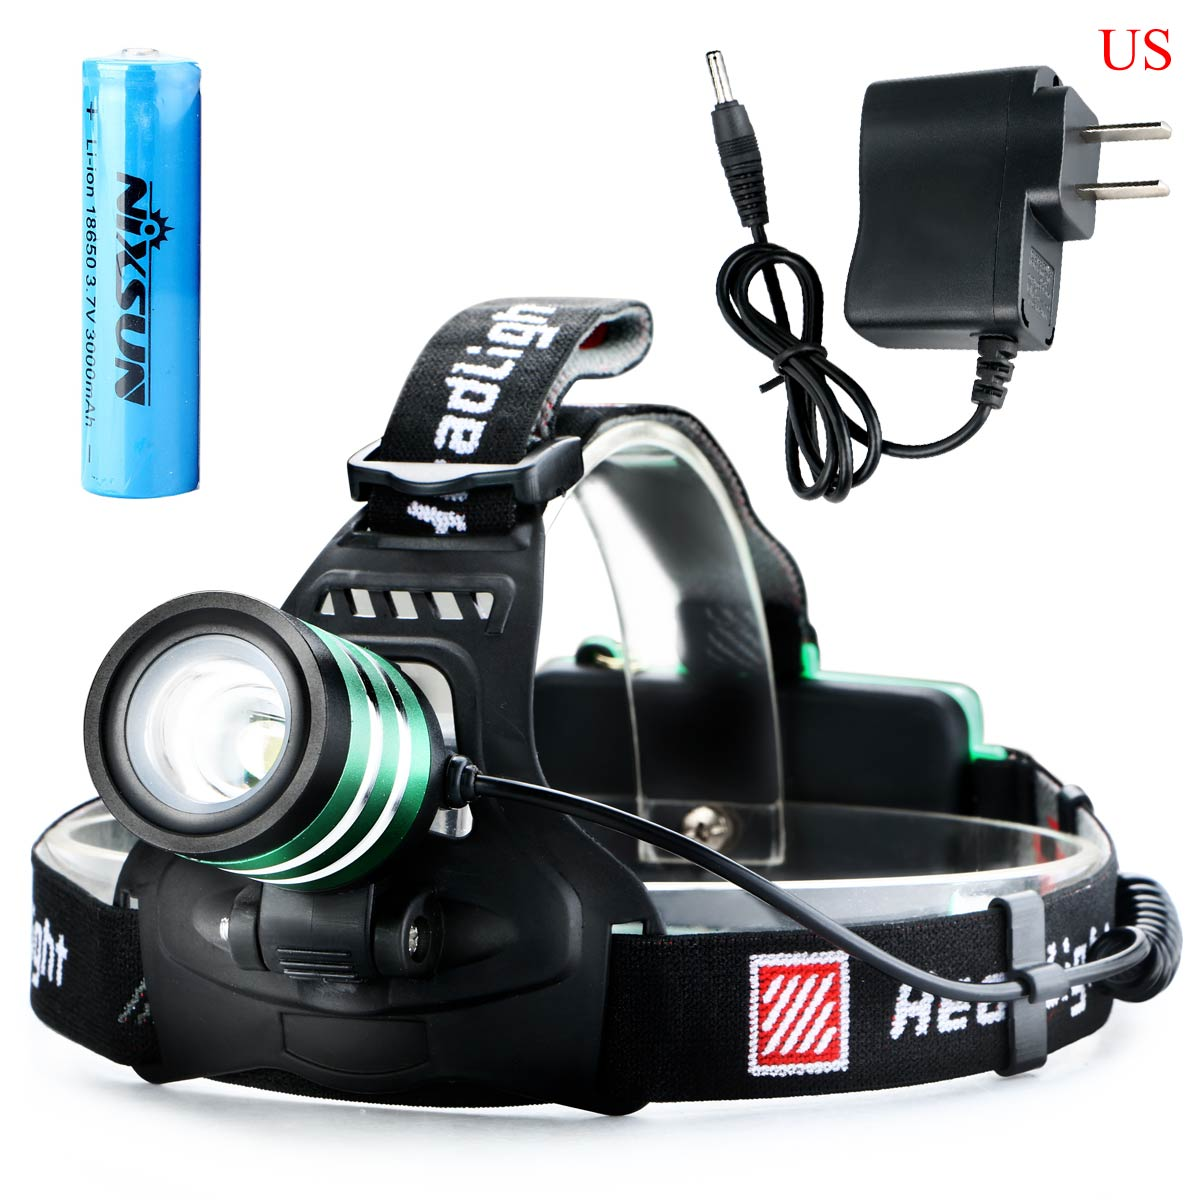 sale 3000Lm CREE XML T6 LED Rechargeable Zoom Headlamp ...